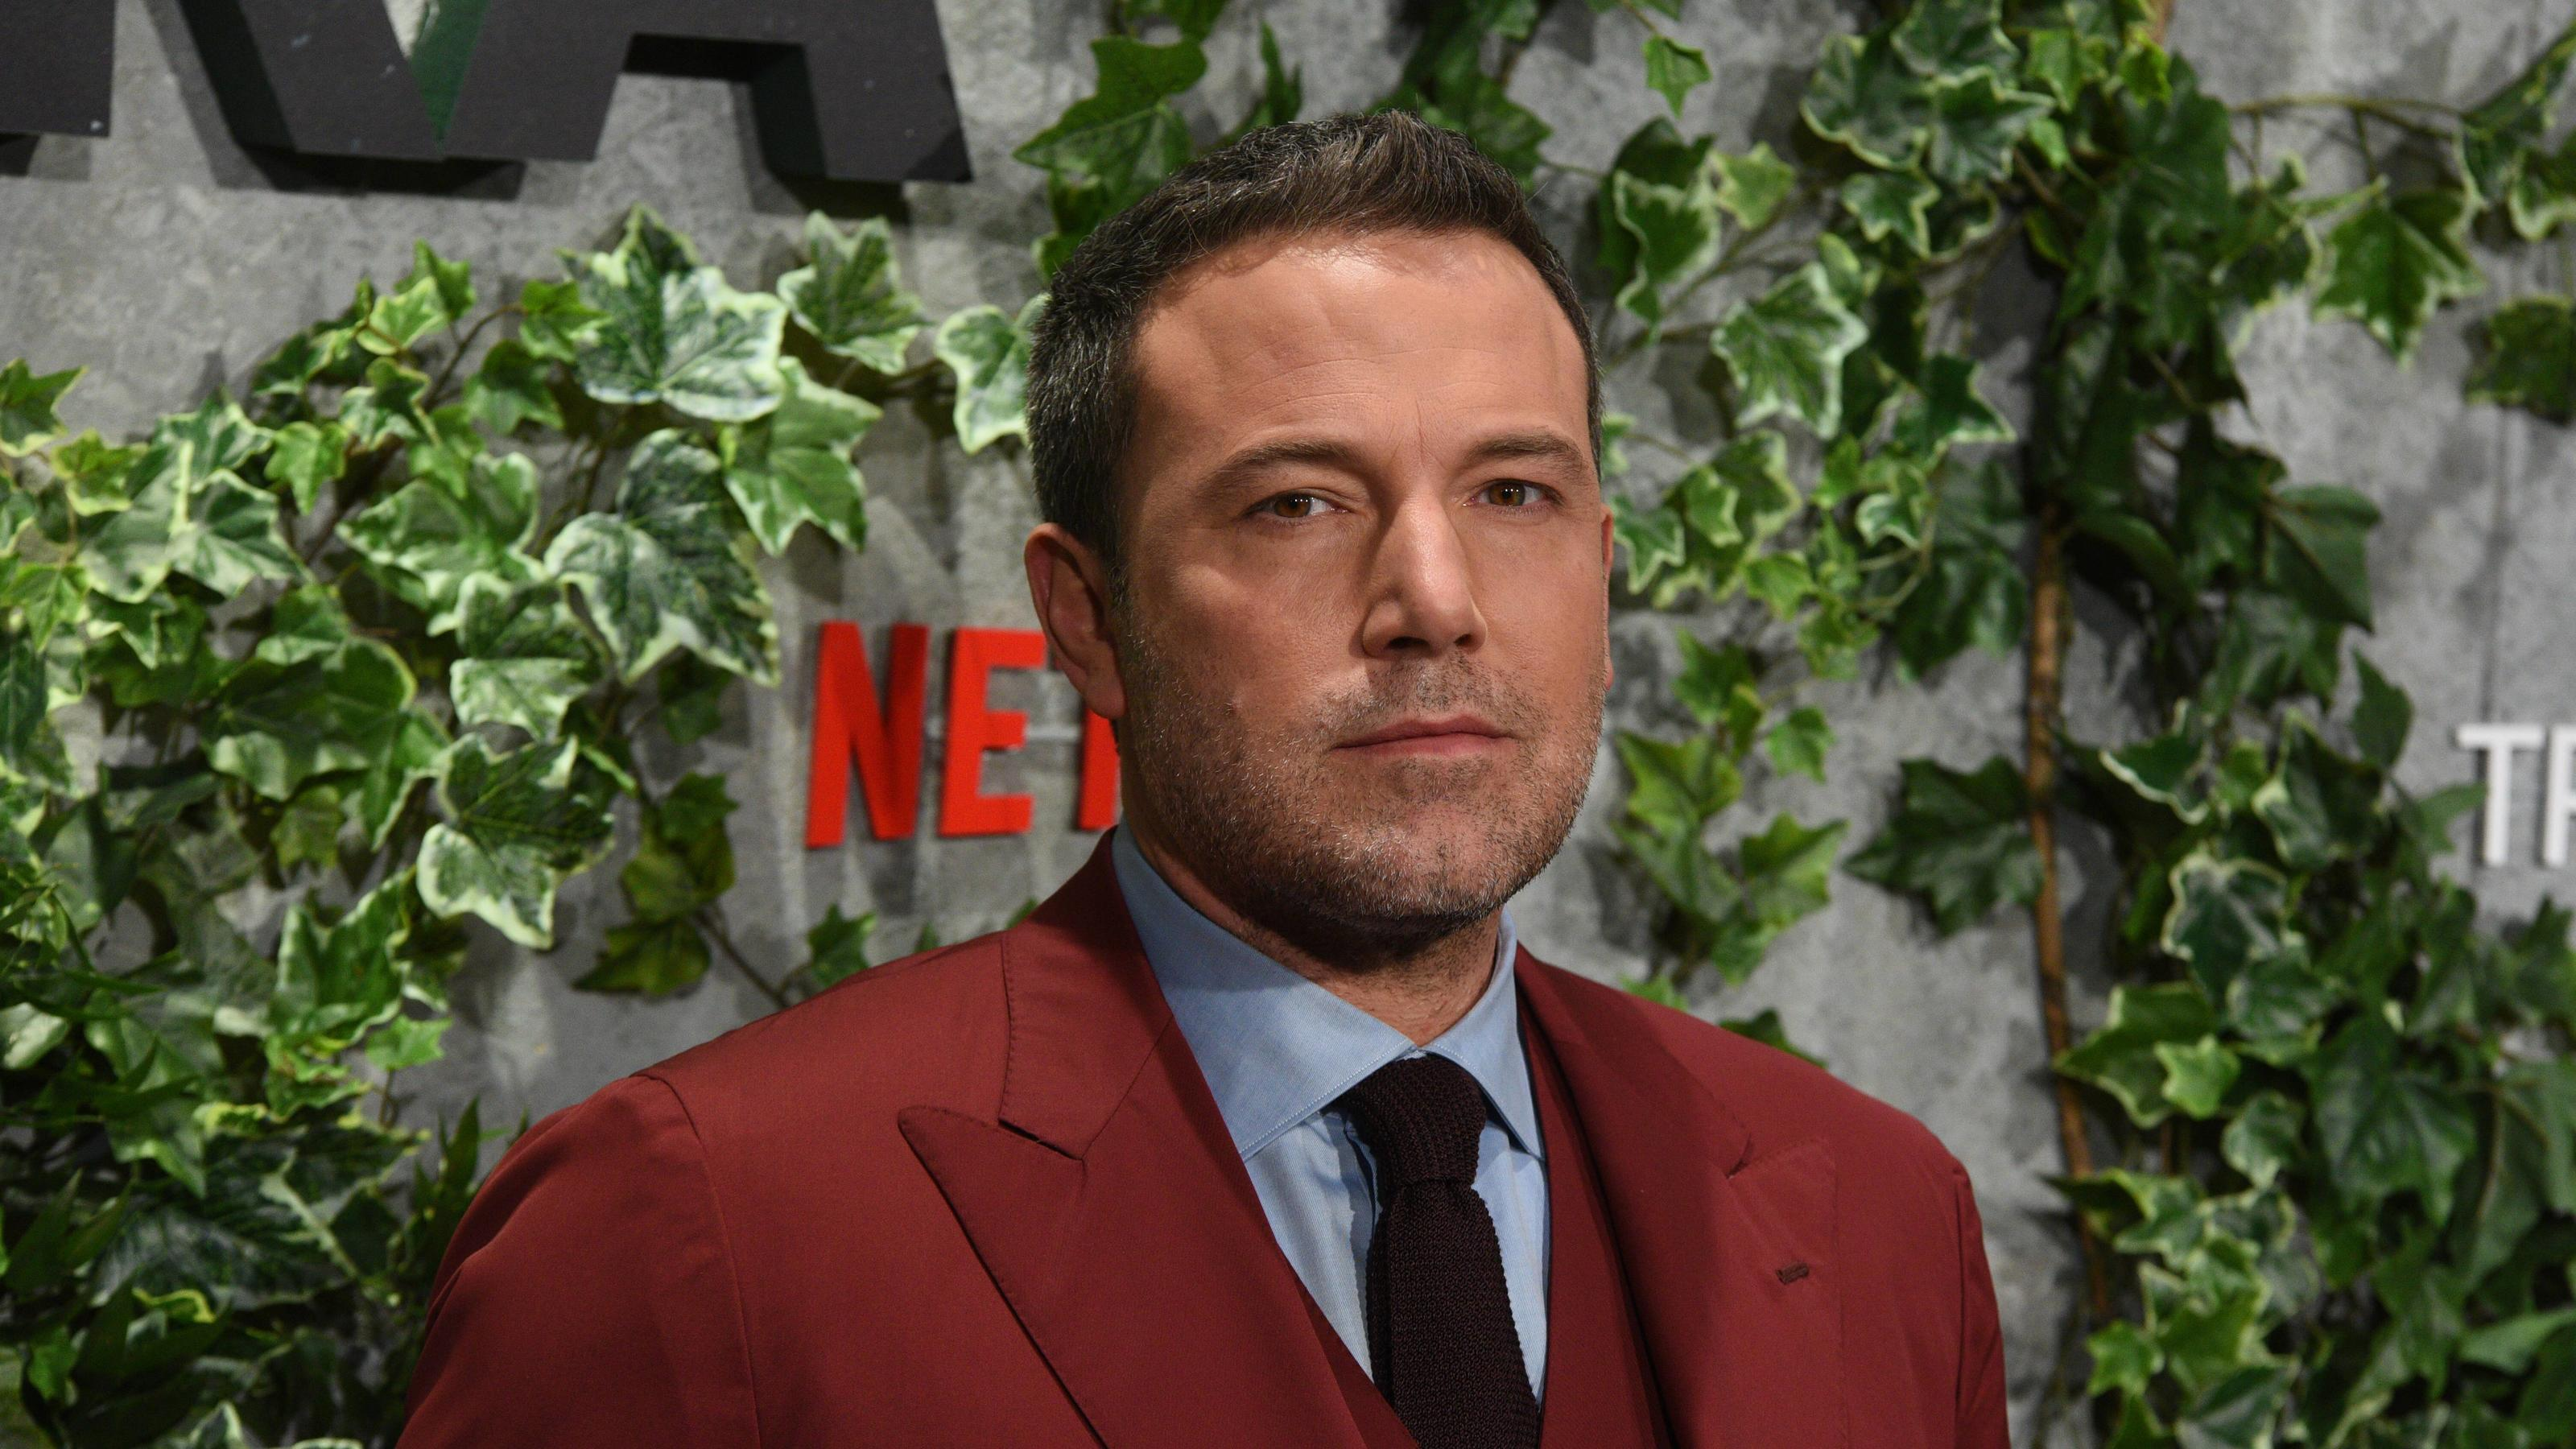 Spain: Triple Frontier Premiere in Madrid US actor Ben Affleck poses as he arrives for the premiere of Triple Frontier at Callao Cinema in Madrid. Madrid Madrid Spain PUBLICATIONxINxGERxSUIxAUTxONLY JorgexSanz